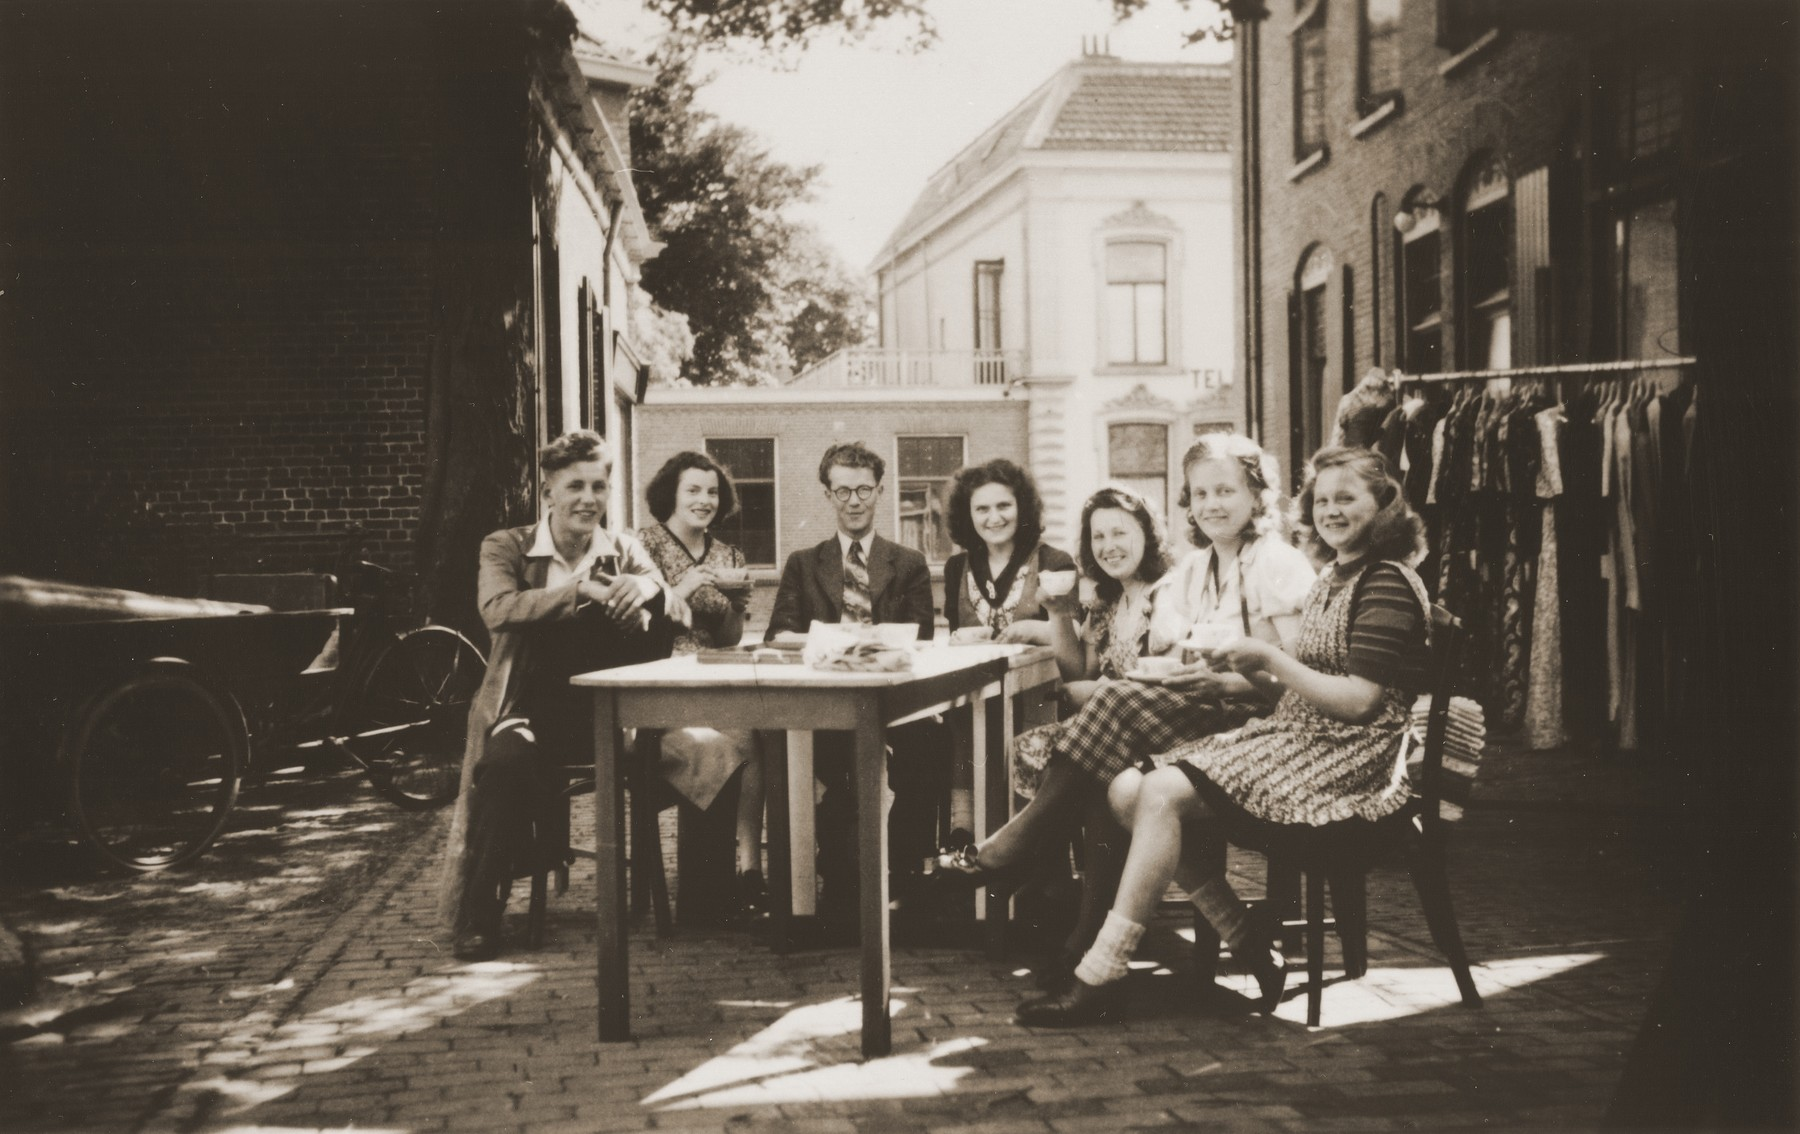 Bep Menco (center) and co-workers at the Zion store enjoy a coffee break in the courtyard behind the business.